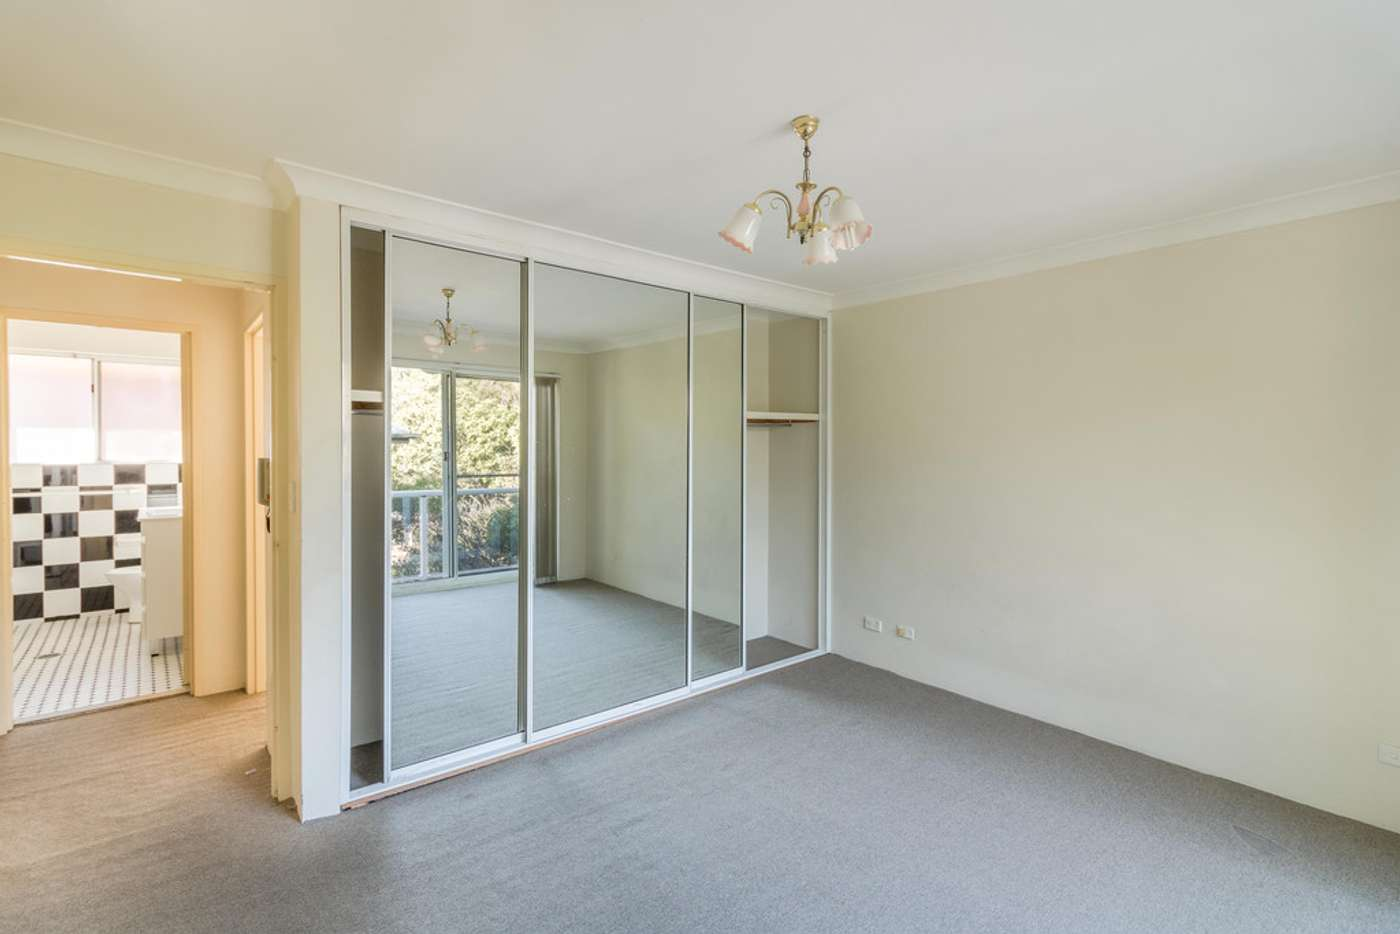 Sixth view of Homely townhouse listing, 4/28 HAINSWORTH STREET, Westmead NSW 2145